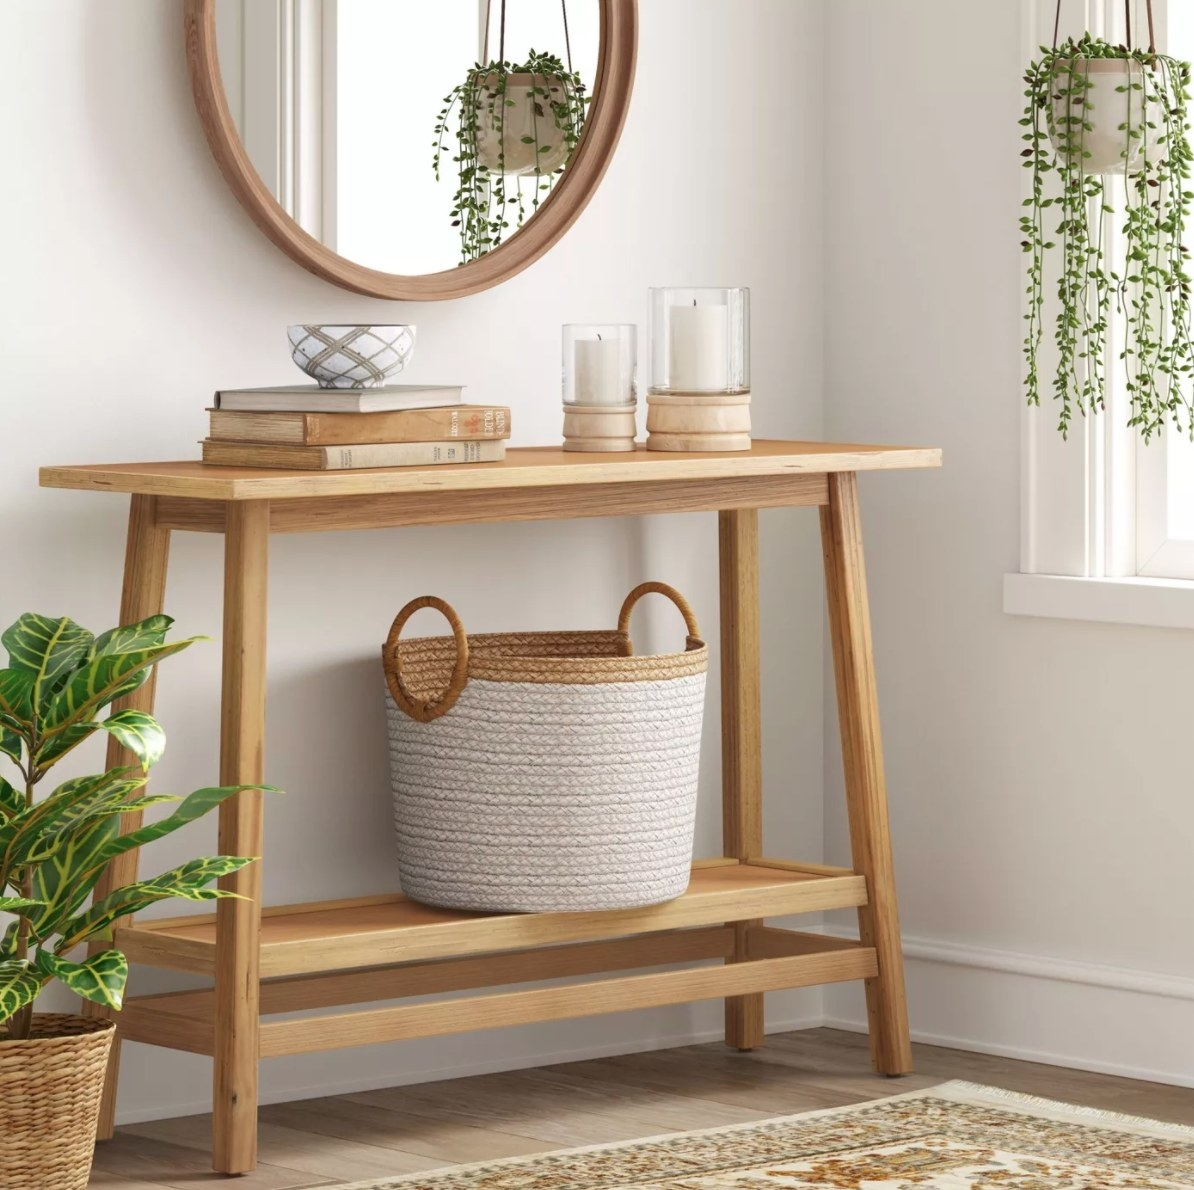 The wood console table holding a basket, books, and candles